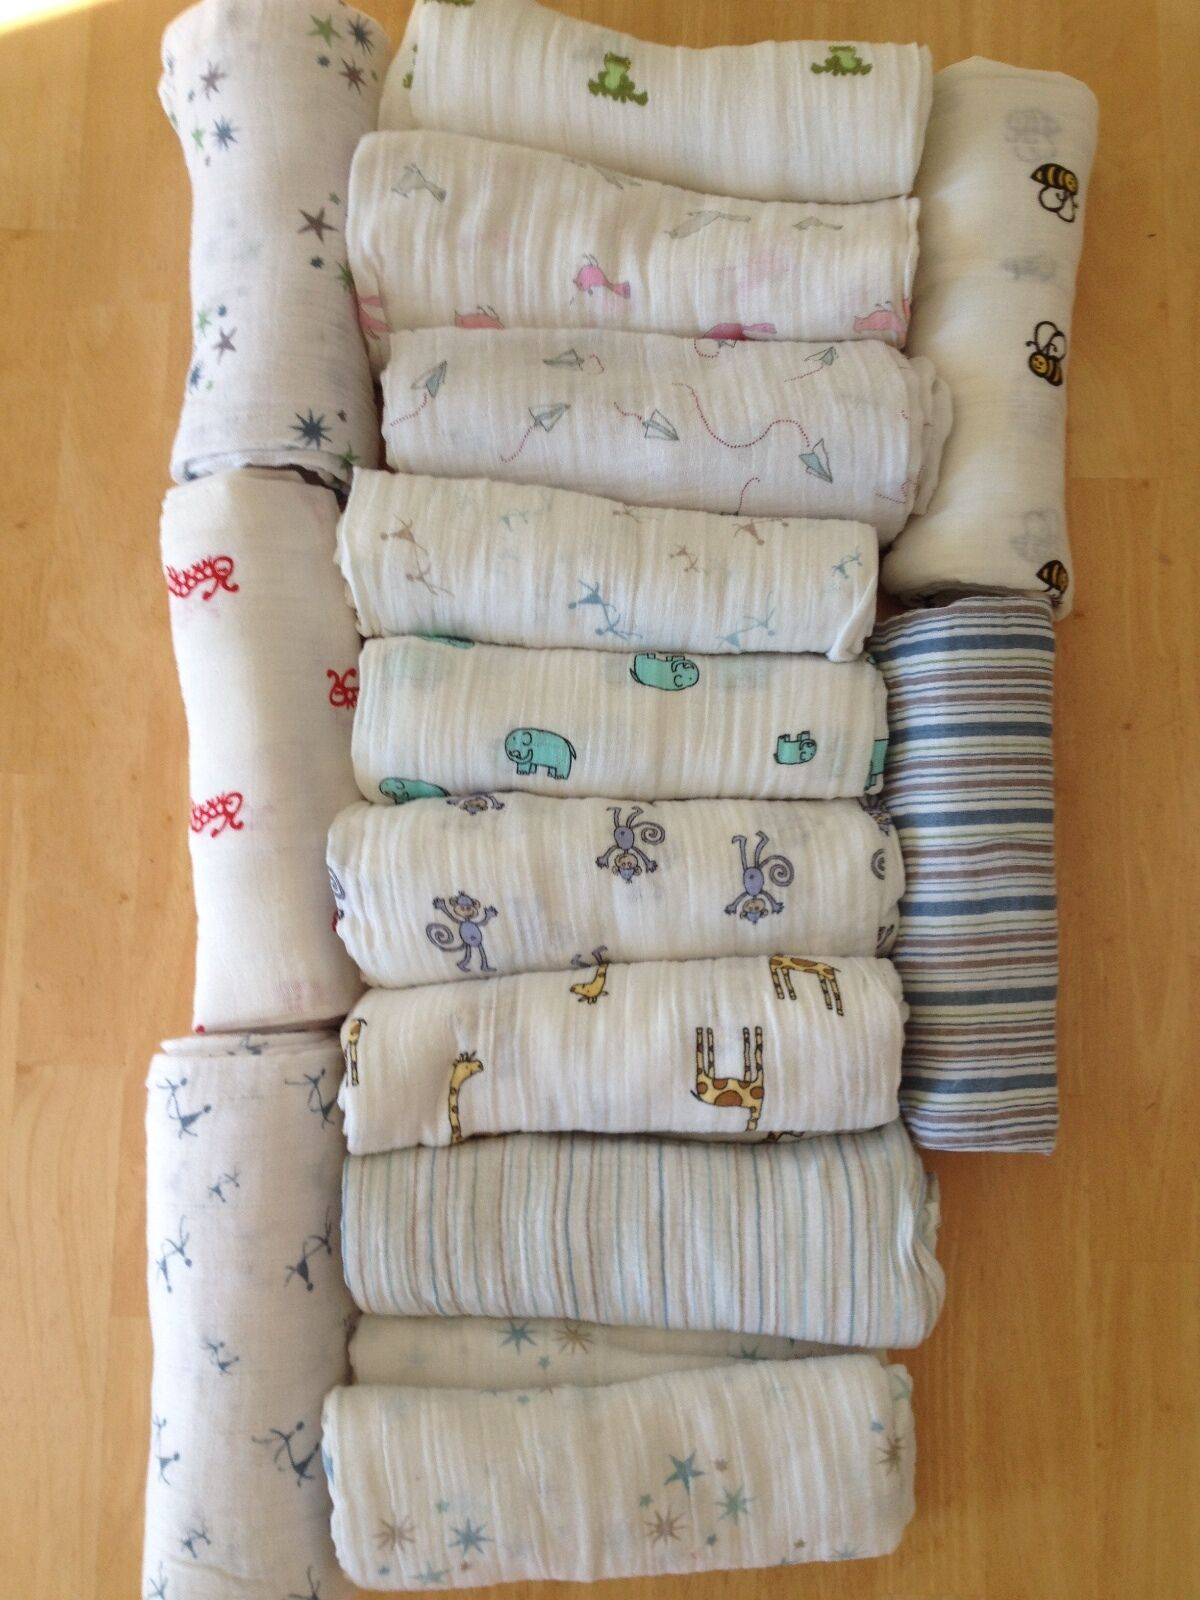 NEW ADEN and ANAIS Muslin Cotton Boutique Swaddle Blanket 47